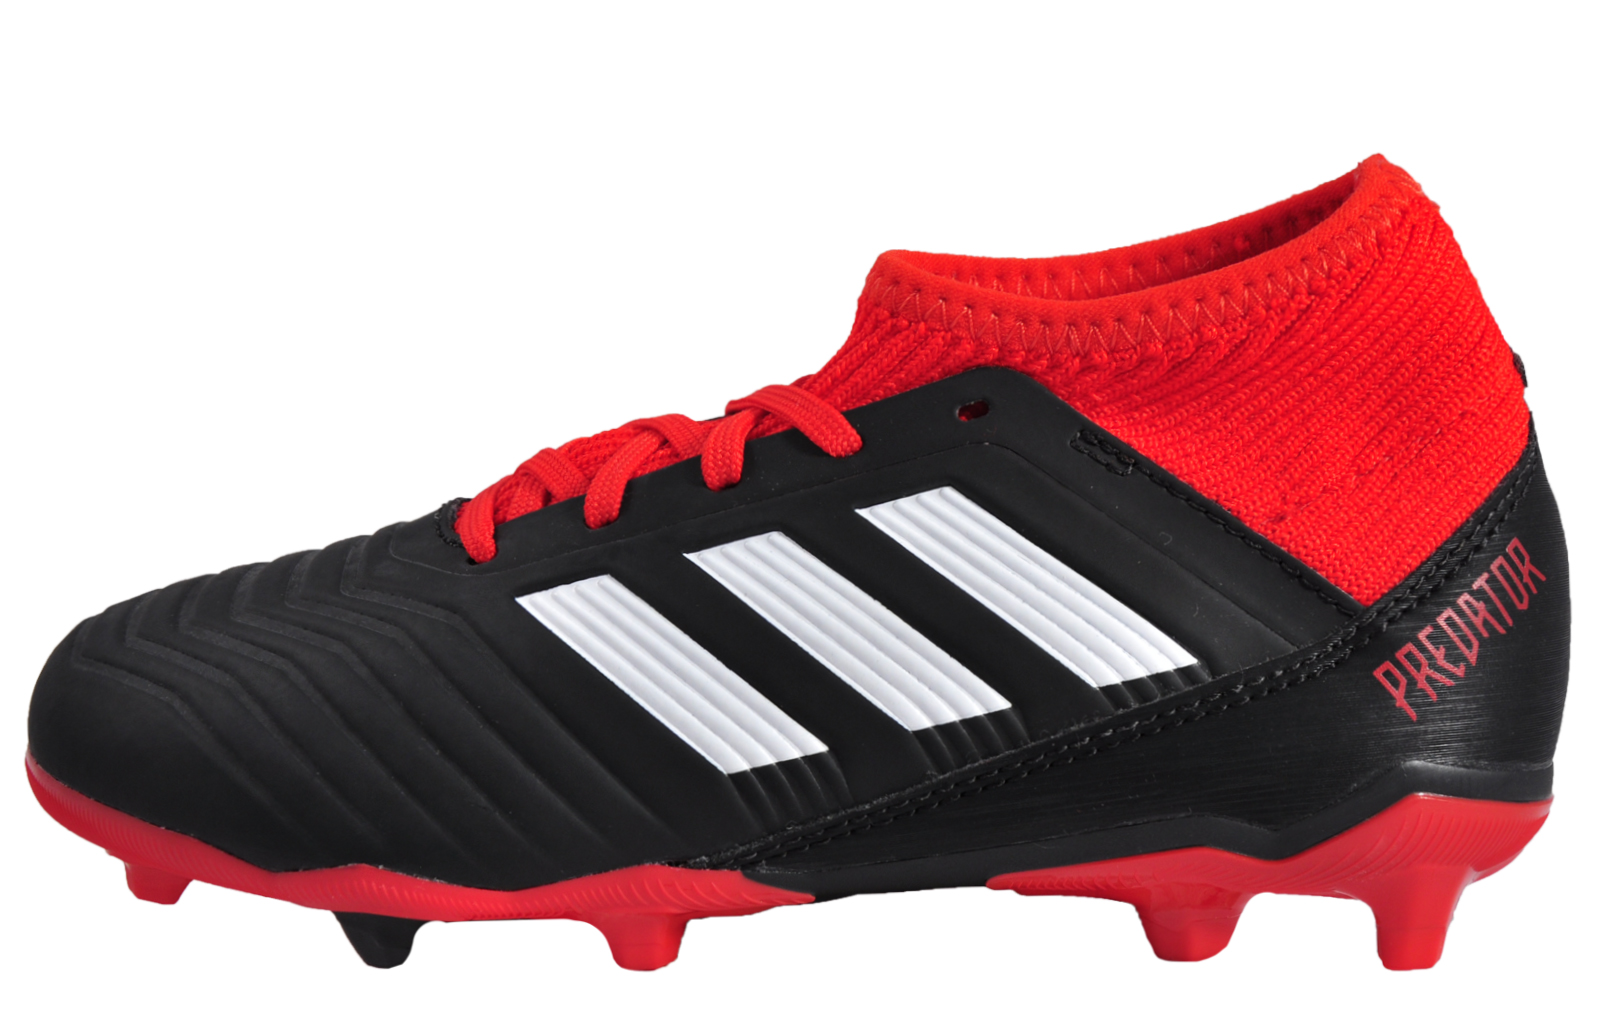 hot sale online 8d183 daf0c Cheap Kids' Football Boots – Free UK Delivery | Express Trainers